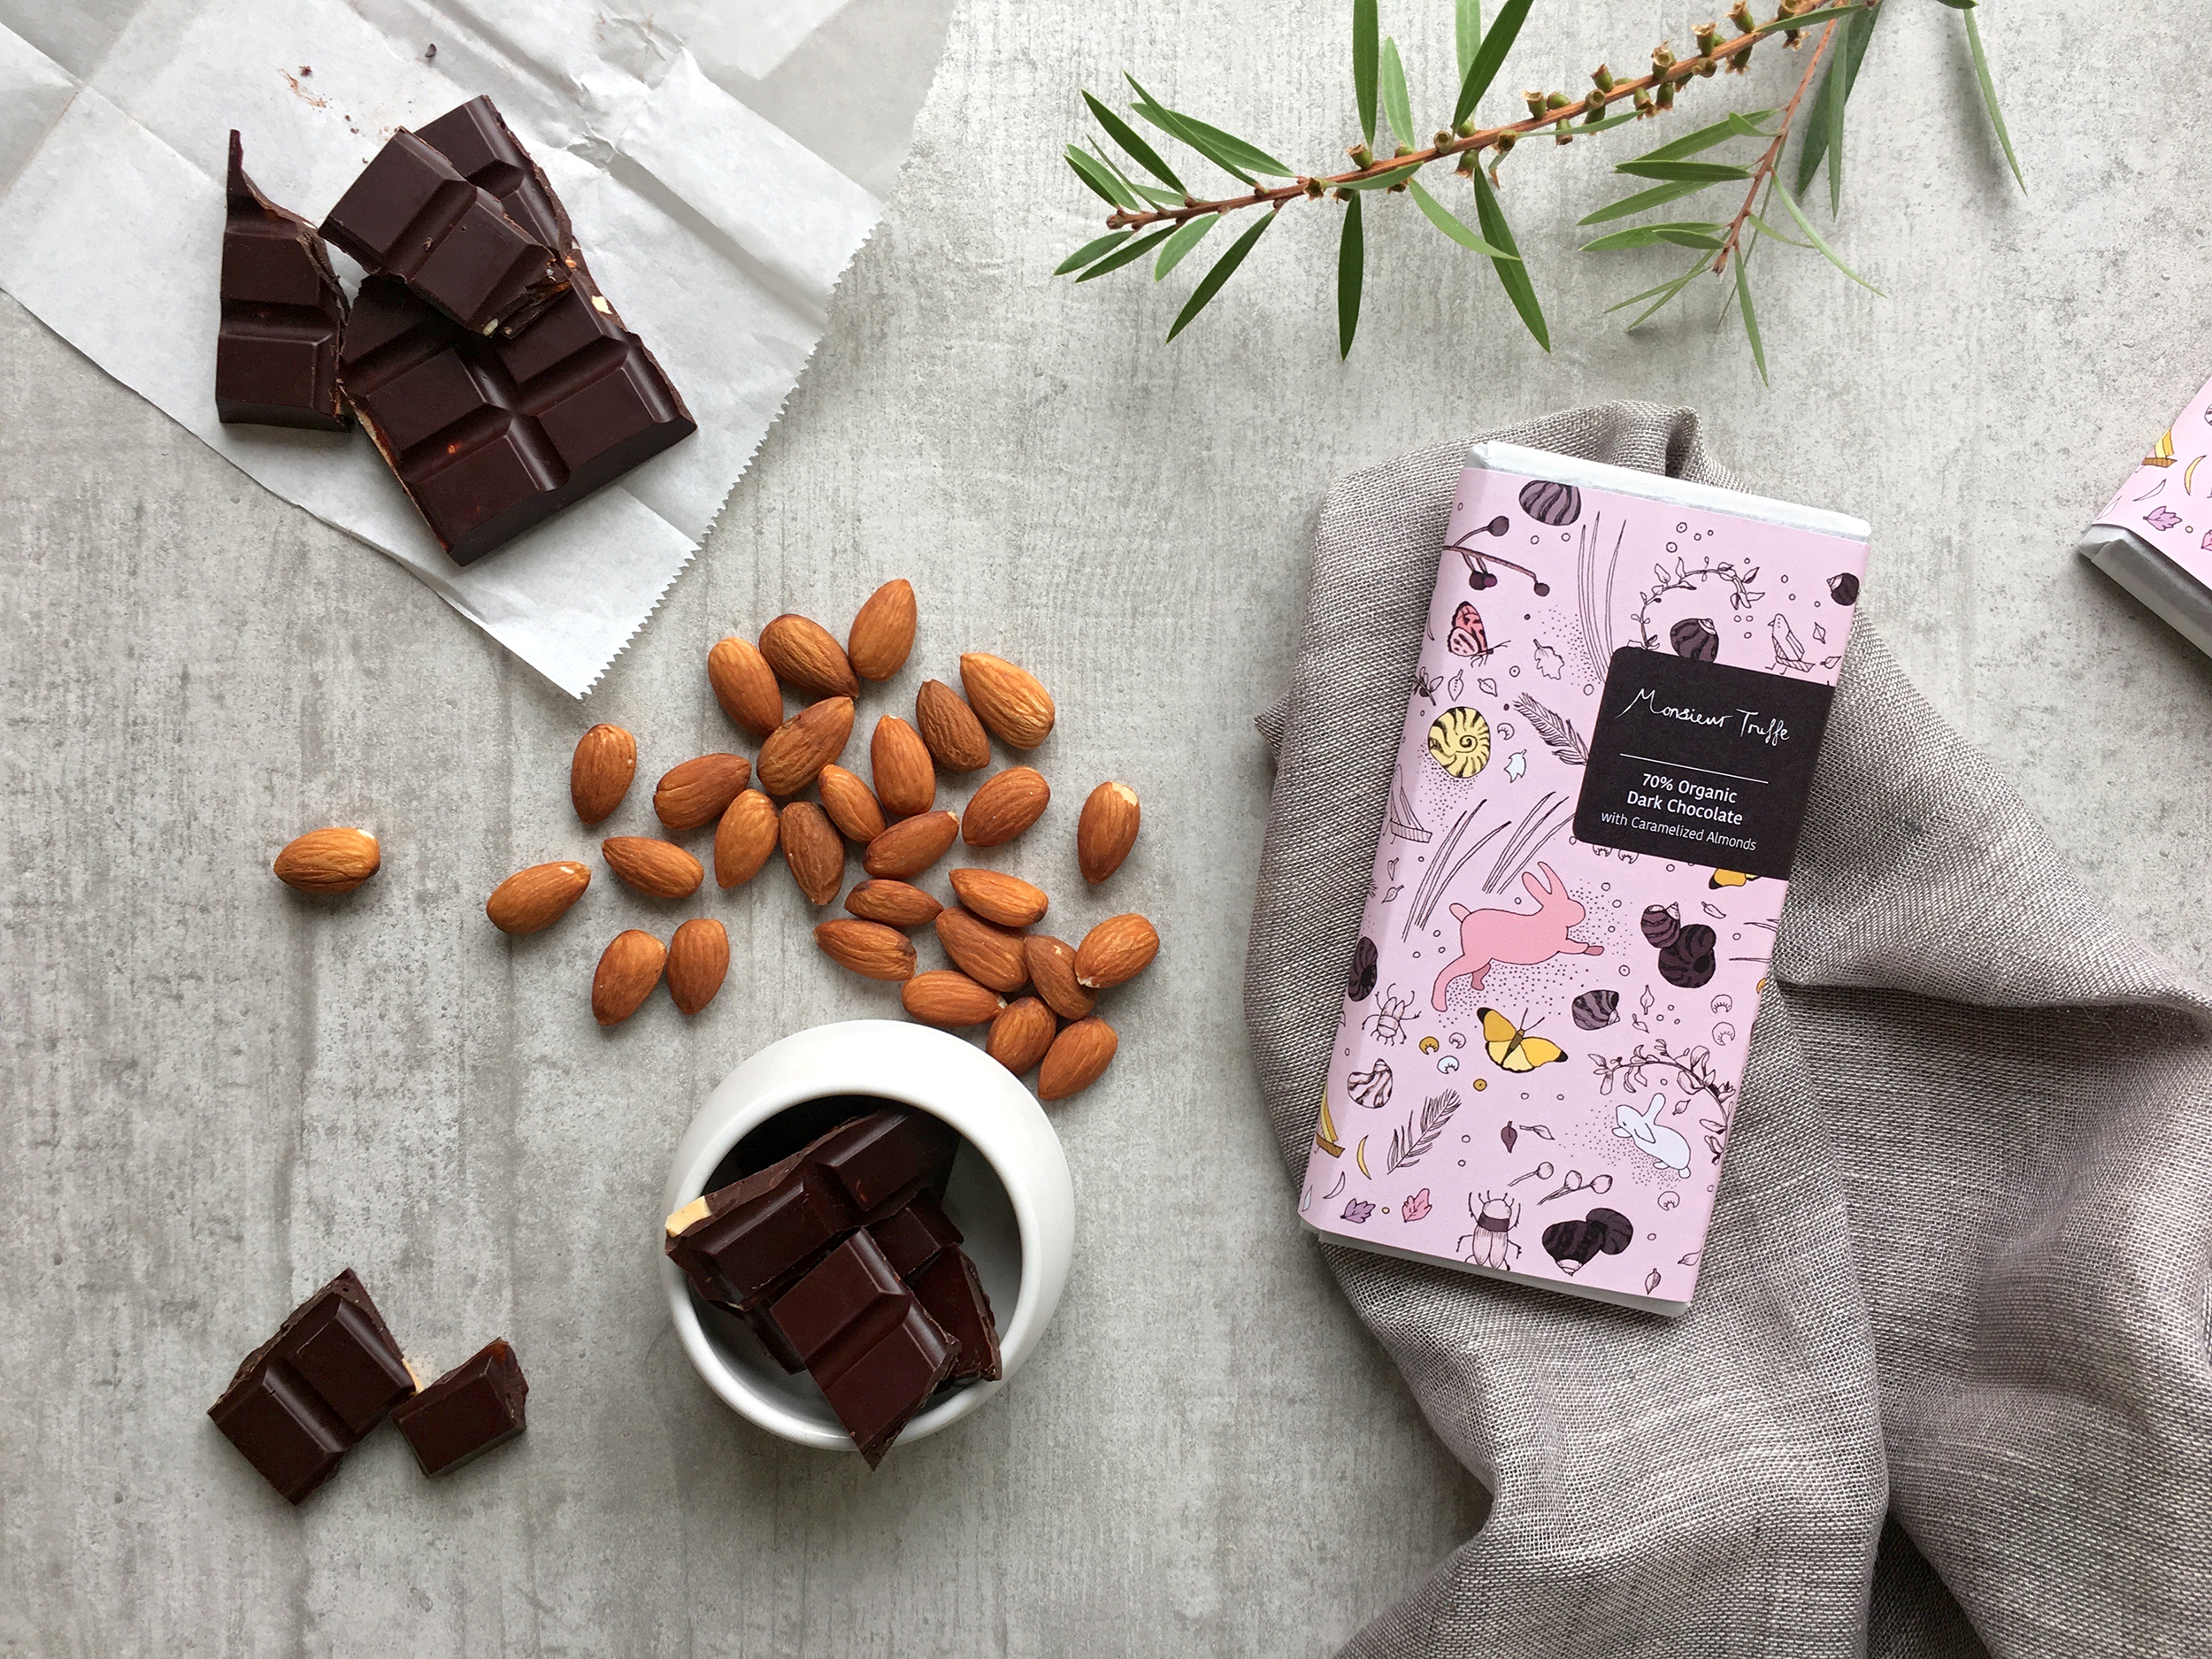 Hybrid Expression Chocolate packaging illustration